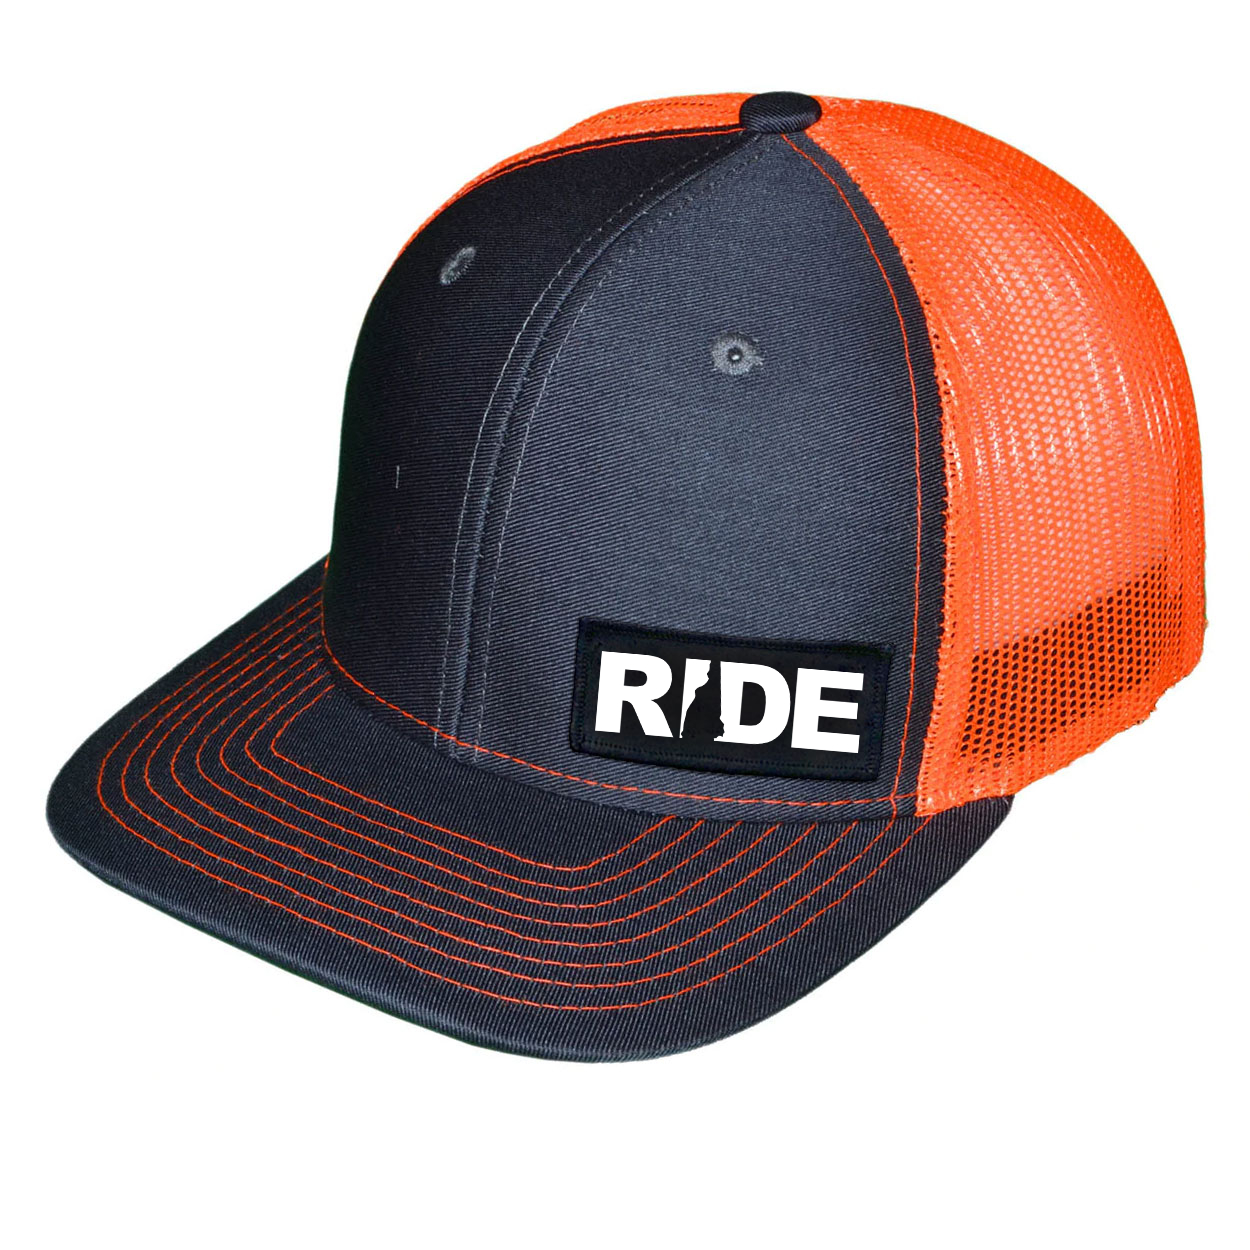 Ride New Hampshire Night Out Woven Patch Snapback Trucker Hat Dark Gray/Orange (White Logo)